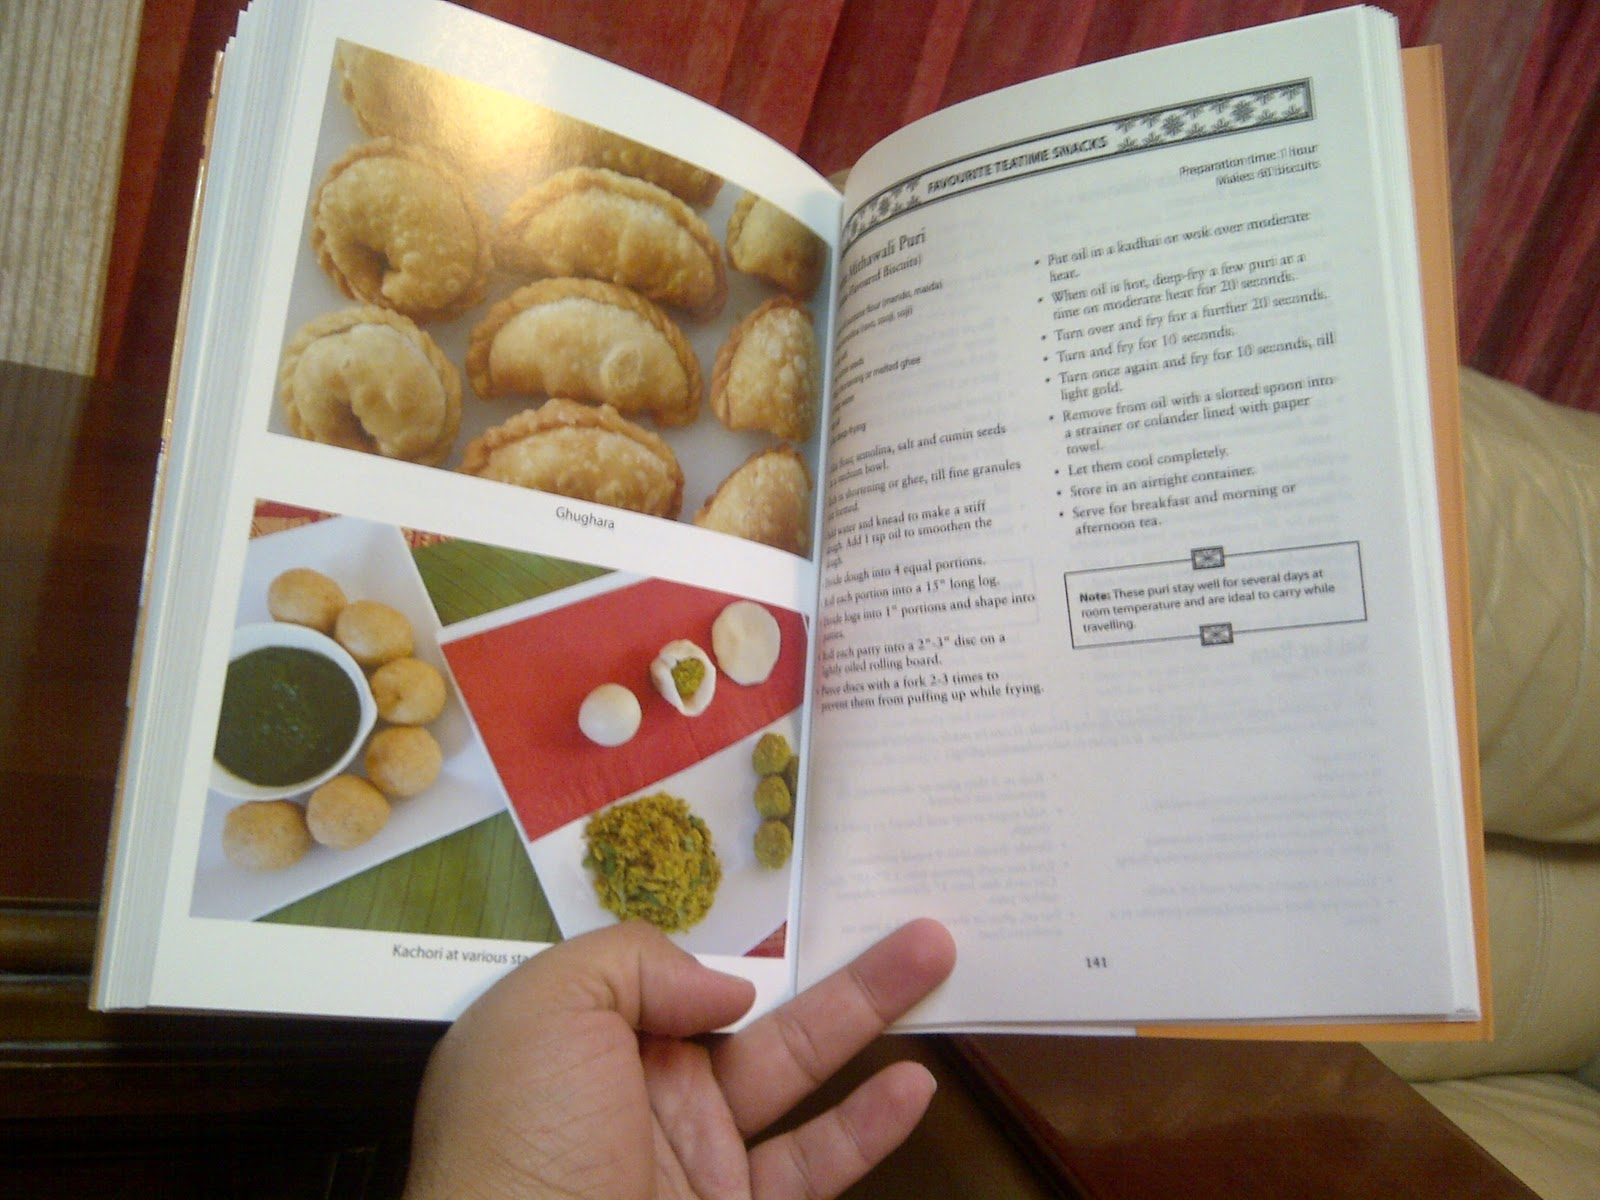 Amus recipes gujarati kitchen a book review forumfinder Image collections